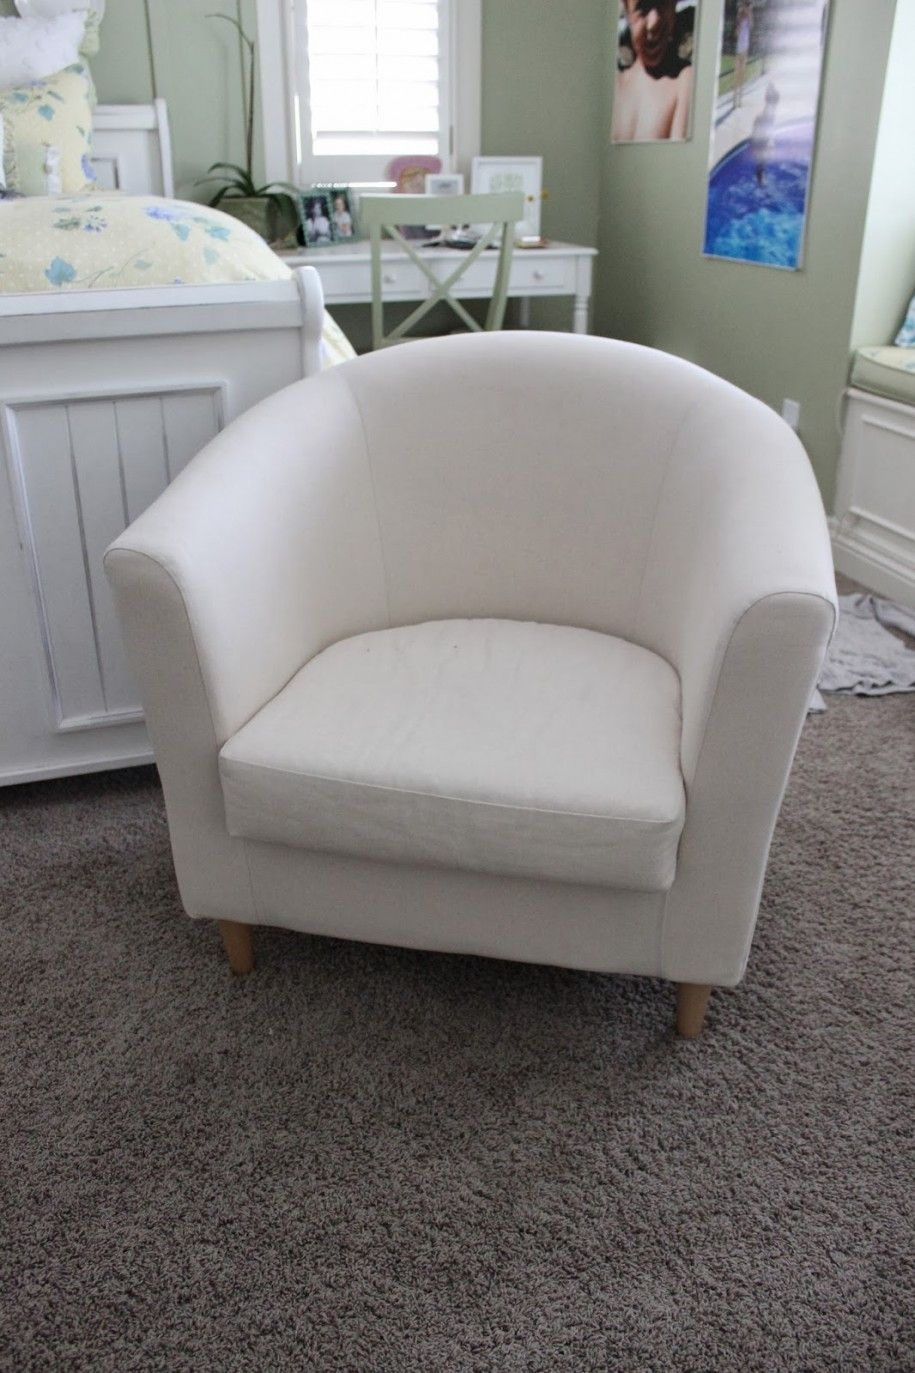 Barrel Chair Slipcover Barrel Chair Slipcovers Ideas Best Chair Slipcovers Design